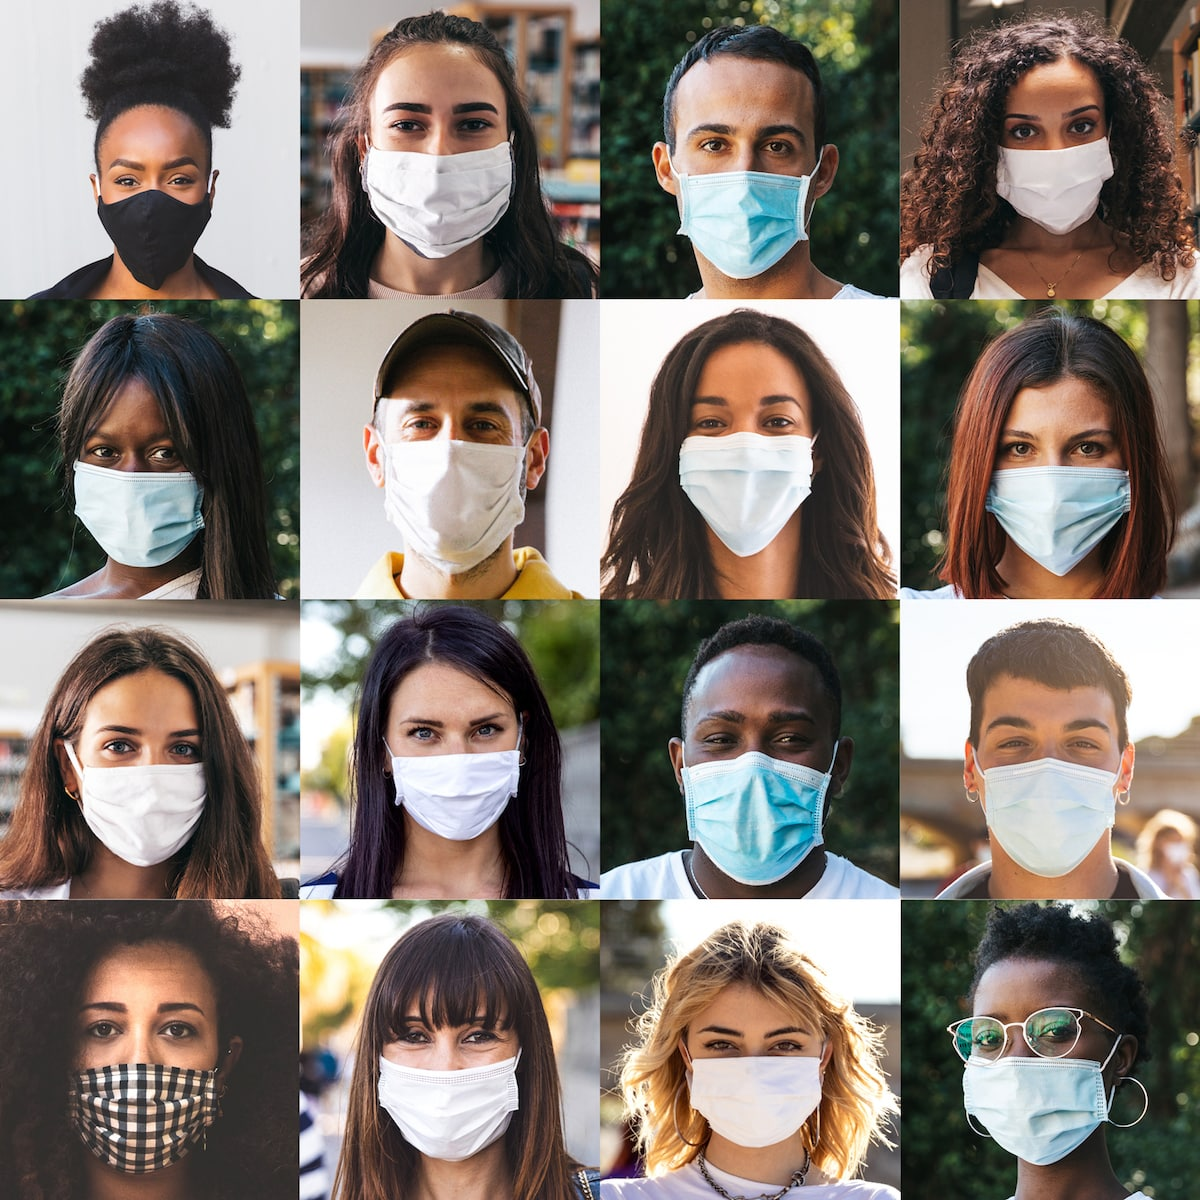 Masks Win! But Surgical Masks Beat Cloth Masks in Biggest Study Yet